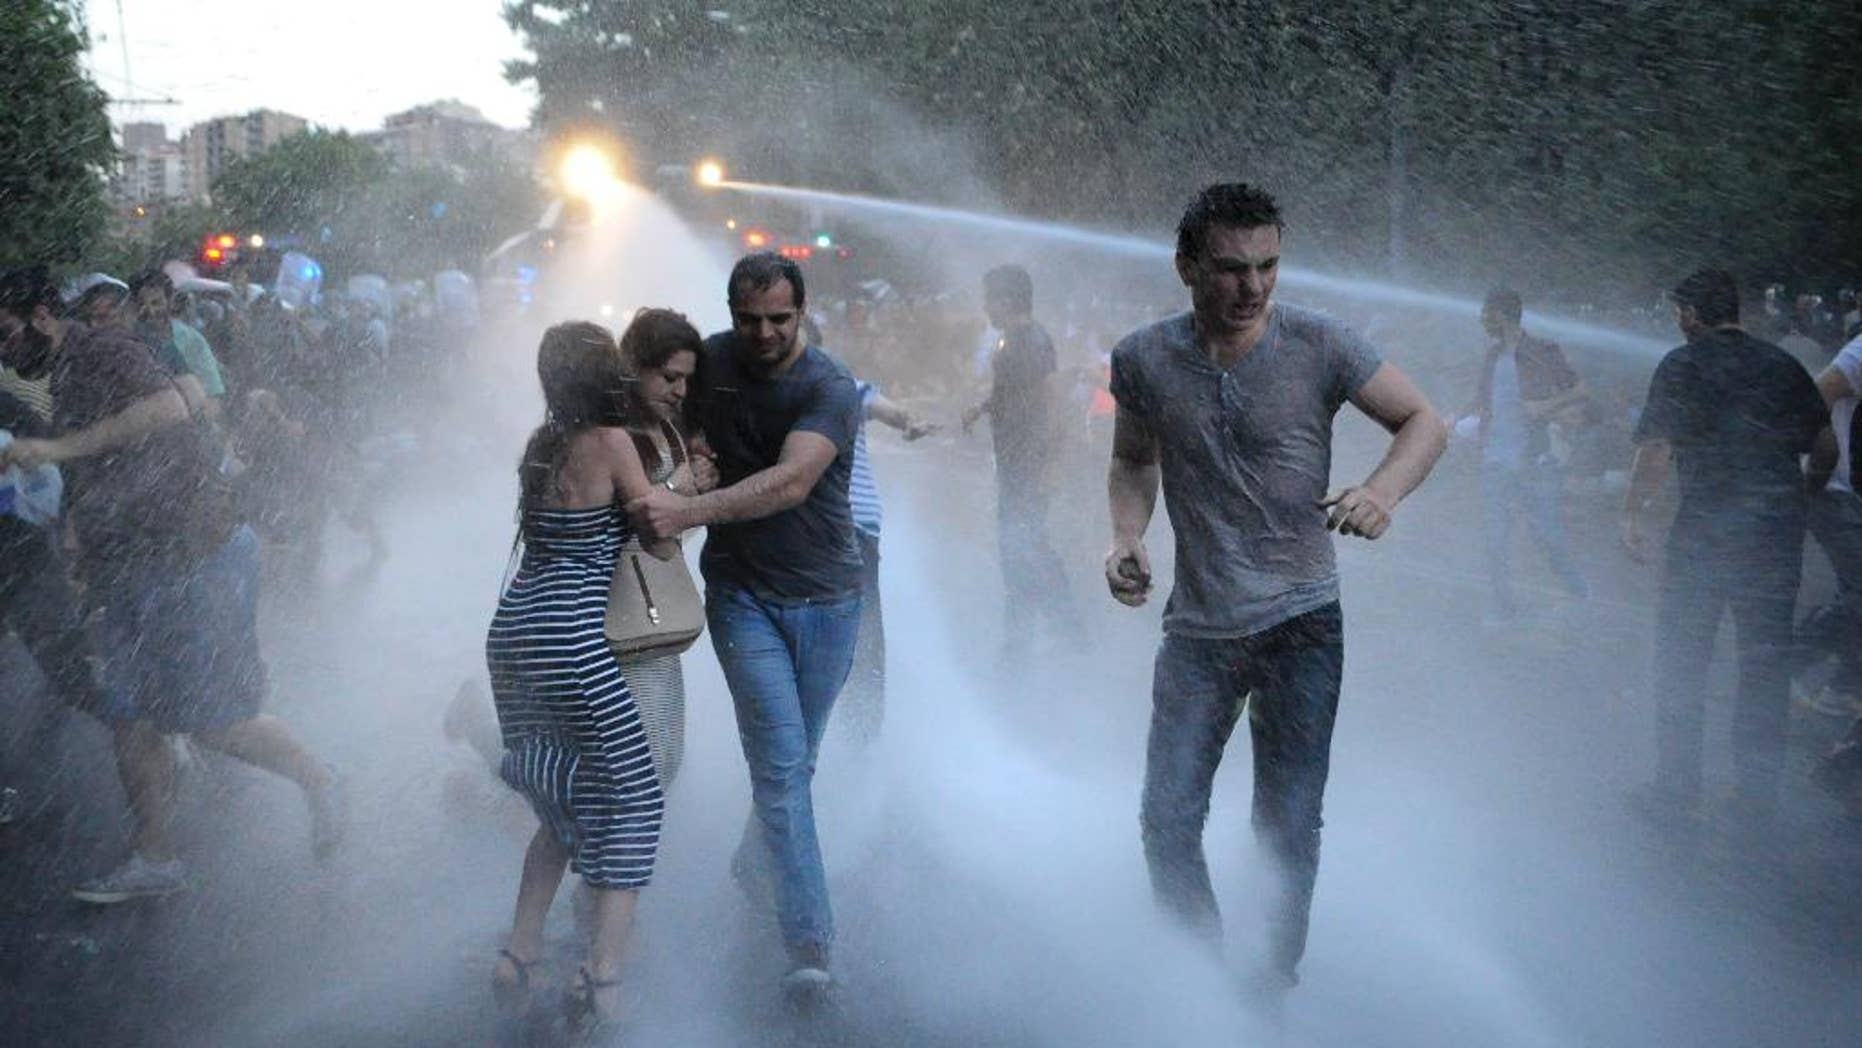 FILE - In this Tuesday, June 23, 2015, file photo, Armenian police use water cannons to disperse protesters demonstrating against an increase in electricity prices in the Armenian capital of Yerevan. The protests are continuing despite the president's decision to suspend the price rise. (Narek Aleksanyan/PAN Photo via AP, File